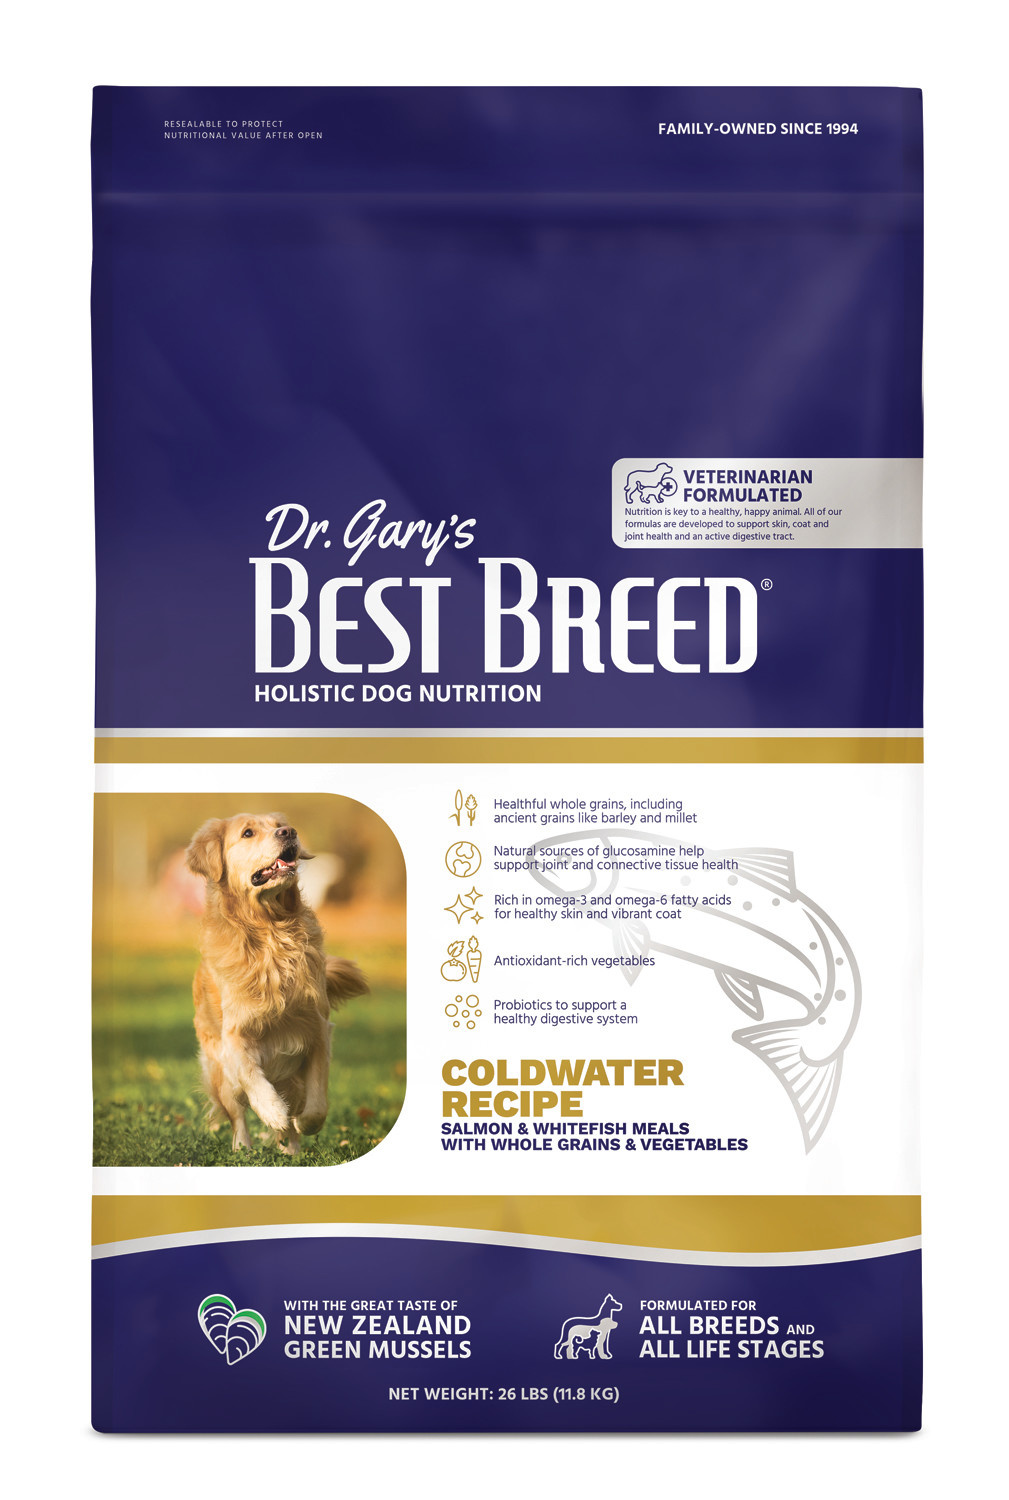 Dr. Gary's Best Breed Dr. Gary's Best Breed  Coldwater Recipe (Salmon with Vegetables and Herbs)-26 Lbs